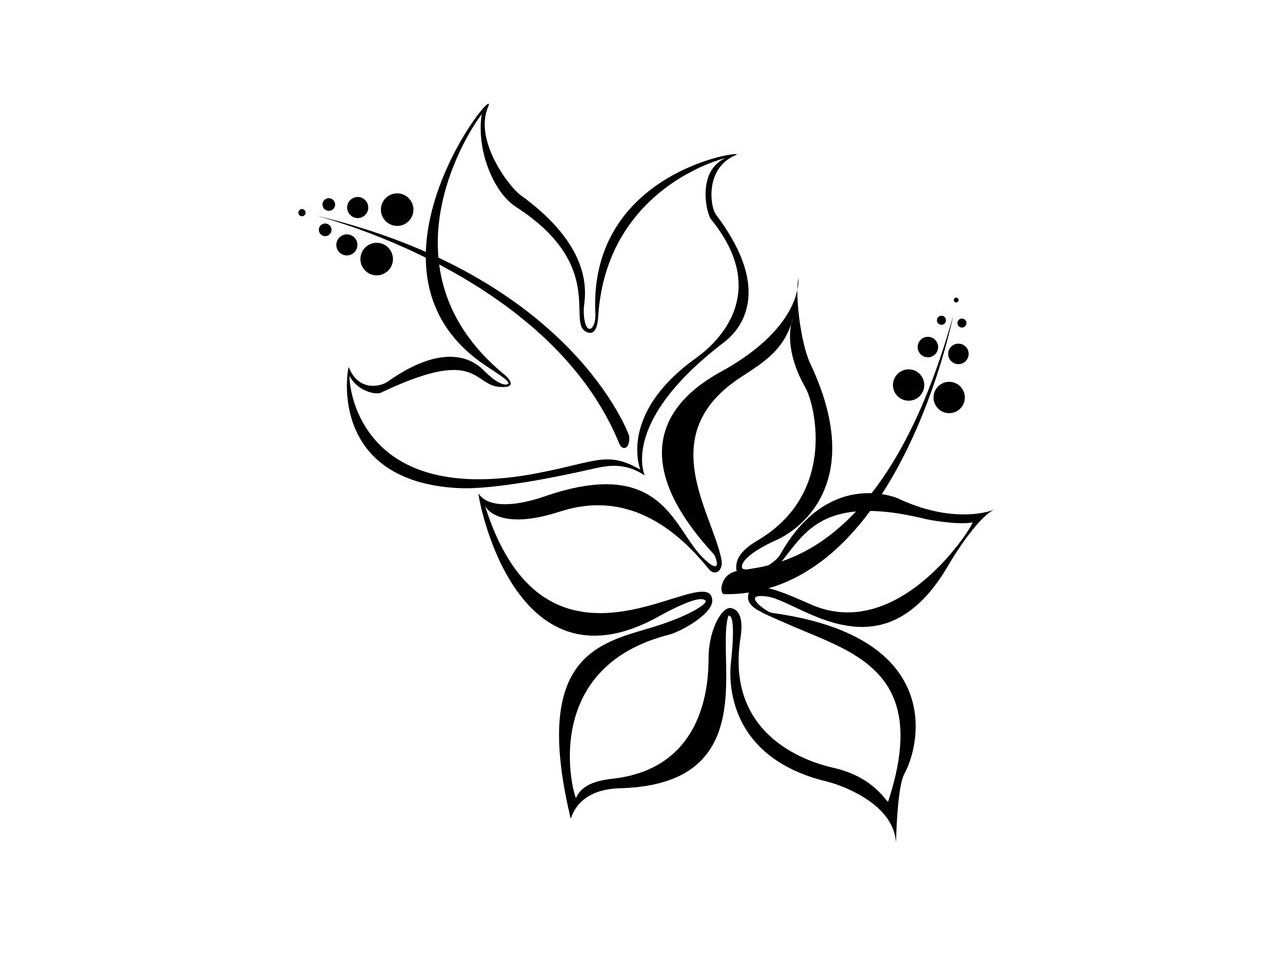 1280x960 Photos Simple Flower Drawings In Black And White,